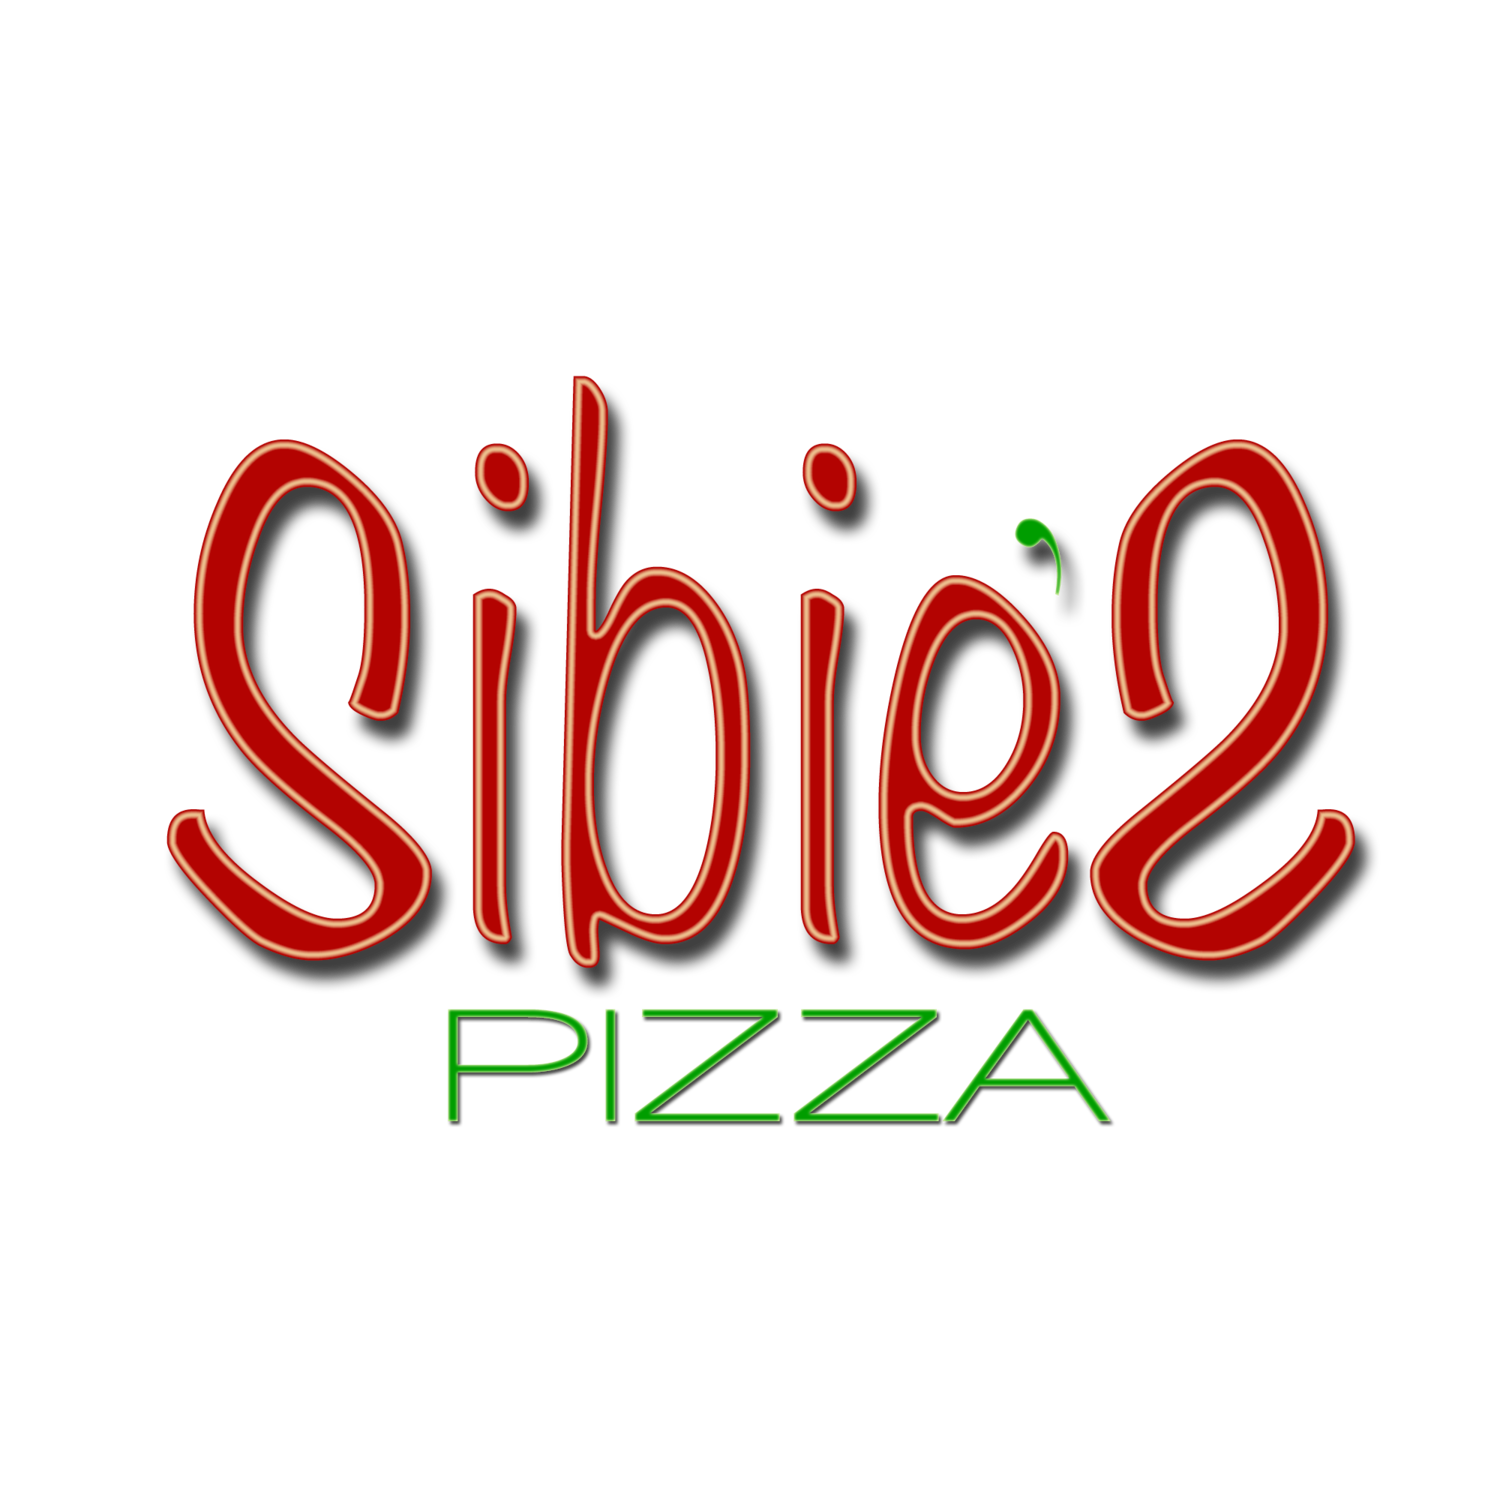 Sibies Pizza - Amherst, MA Pizza Delivery, Take out, and Catering